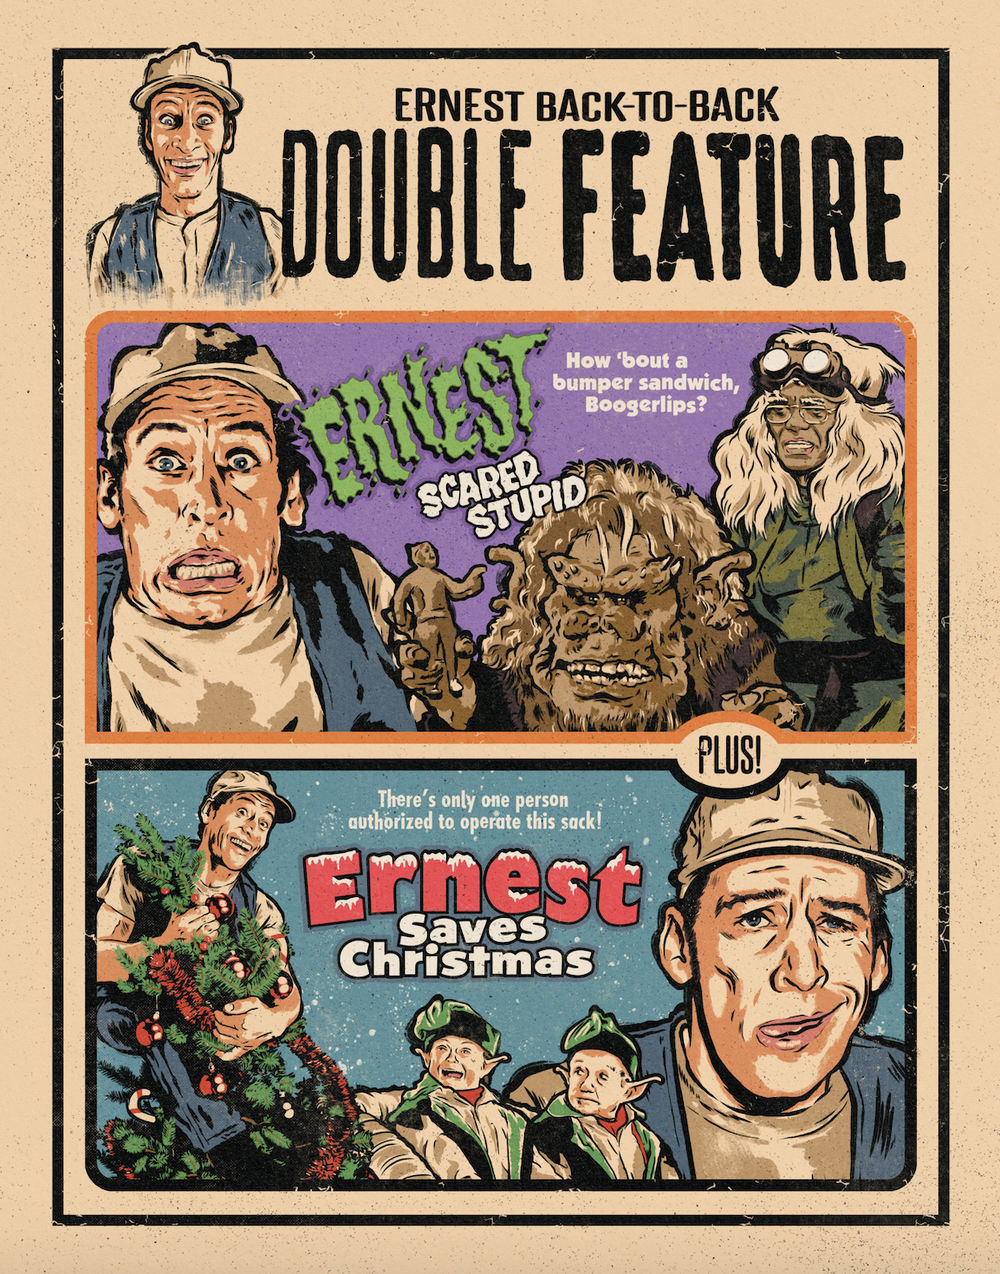 Ernest Double Feature – 11x14 Print